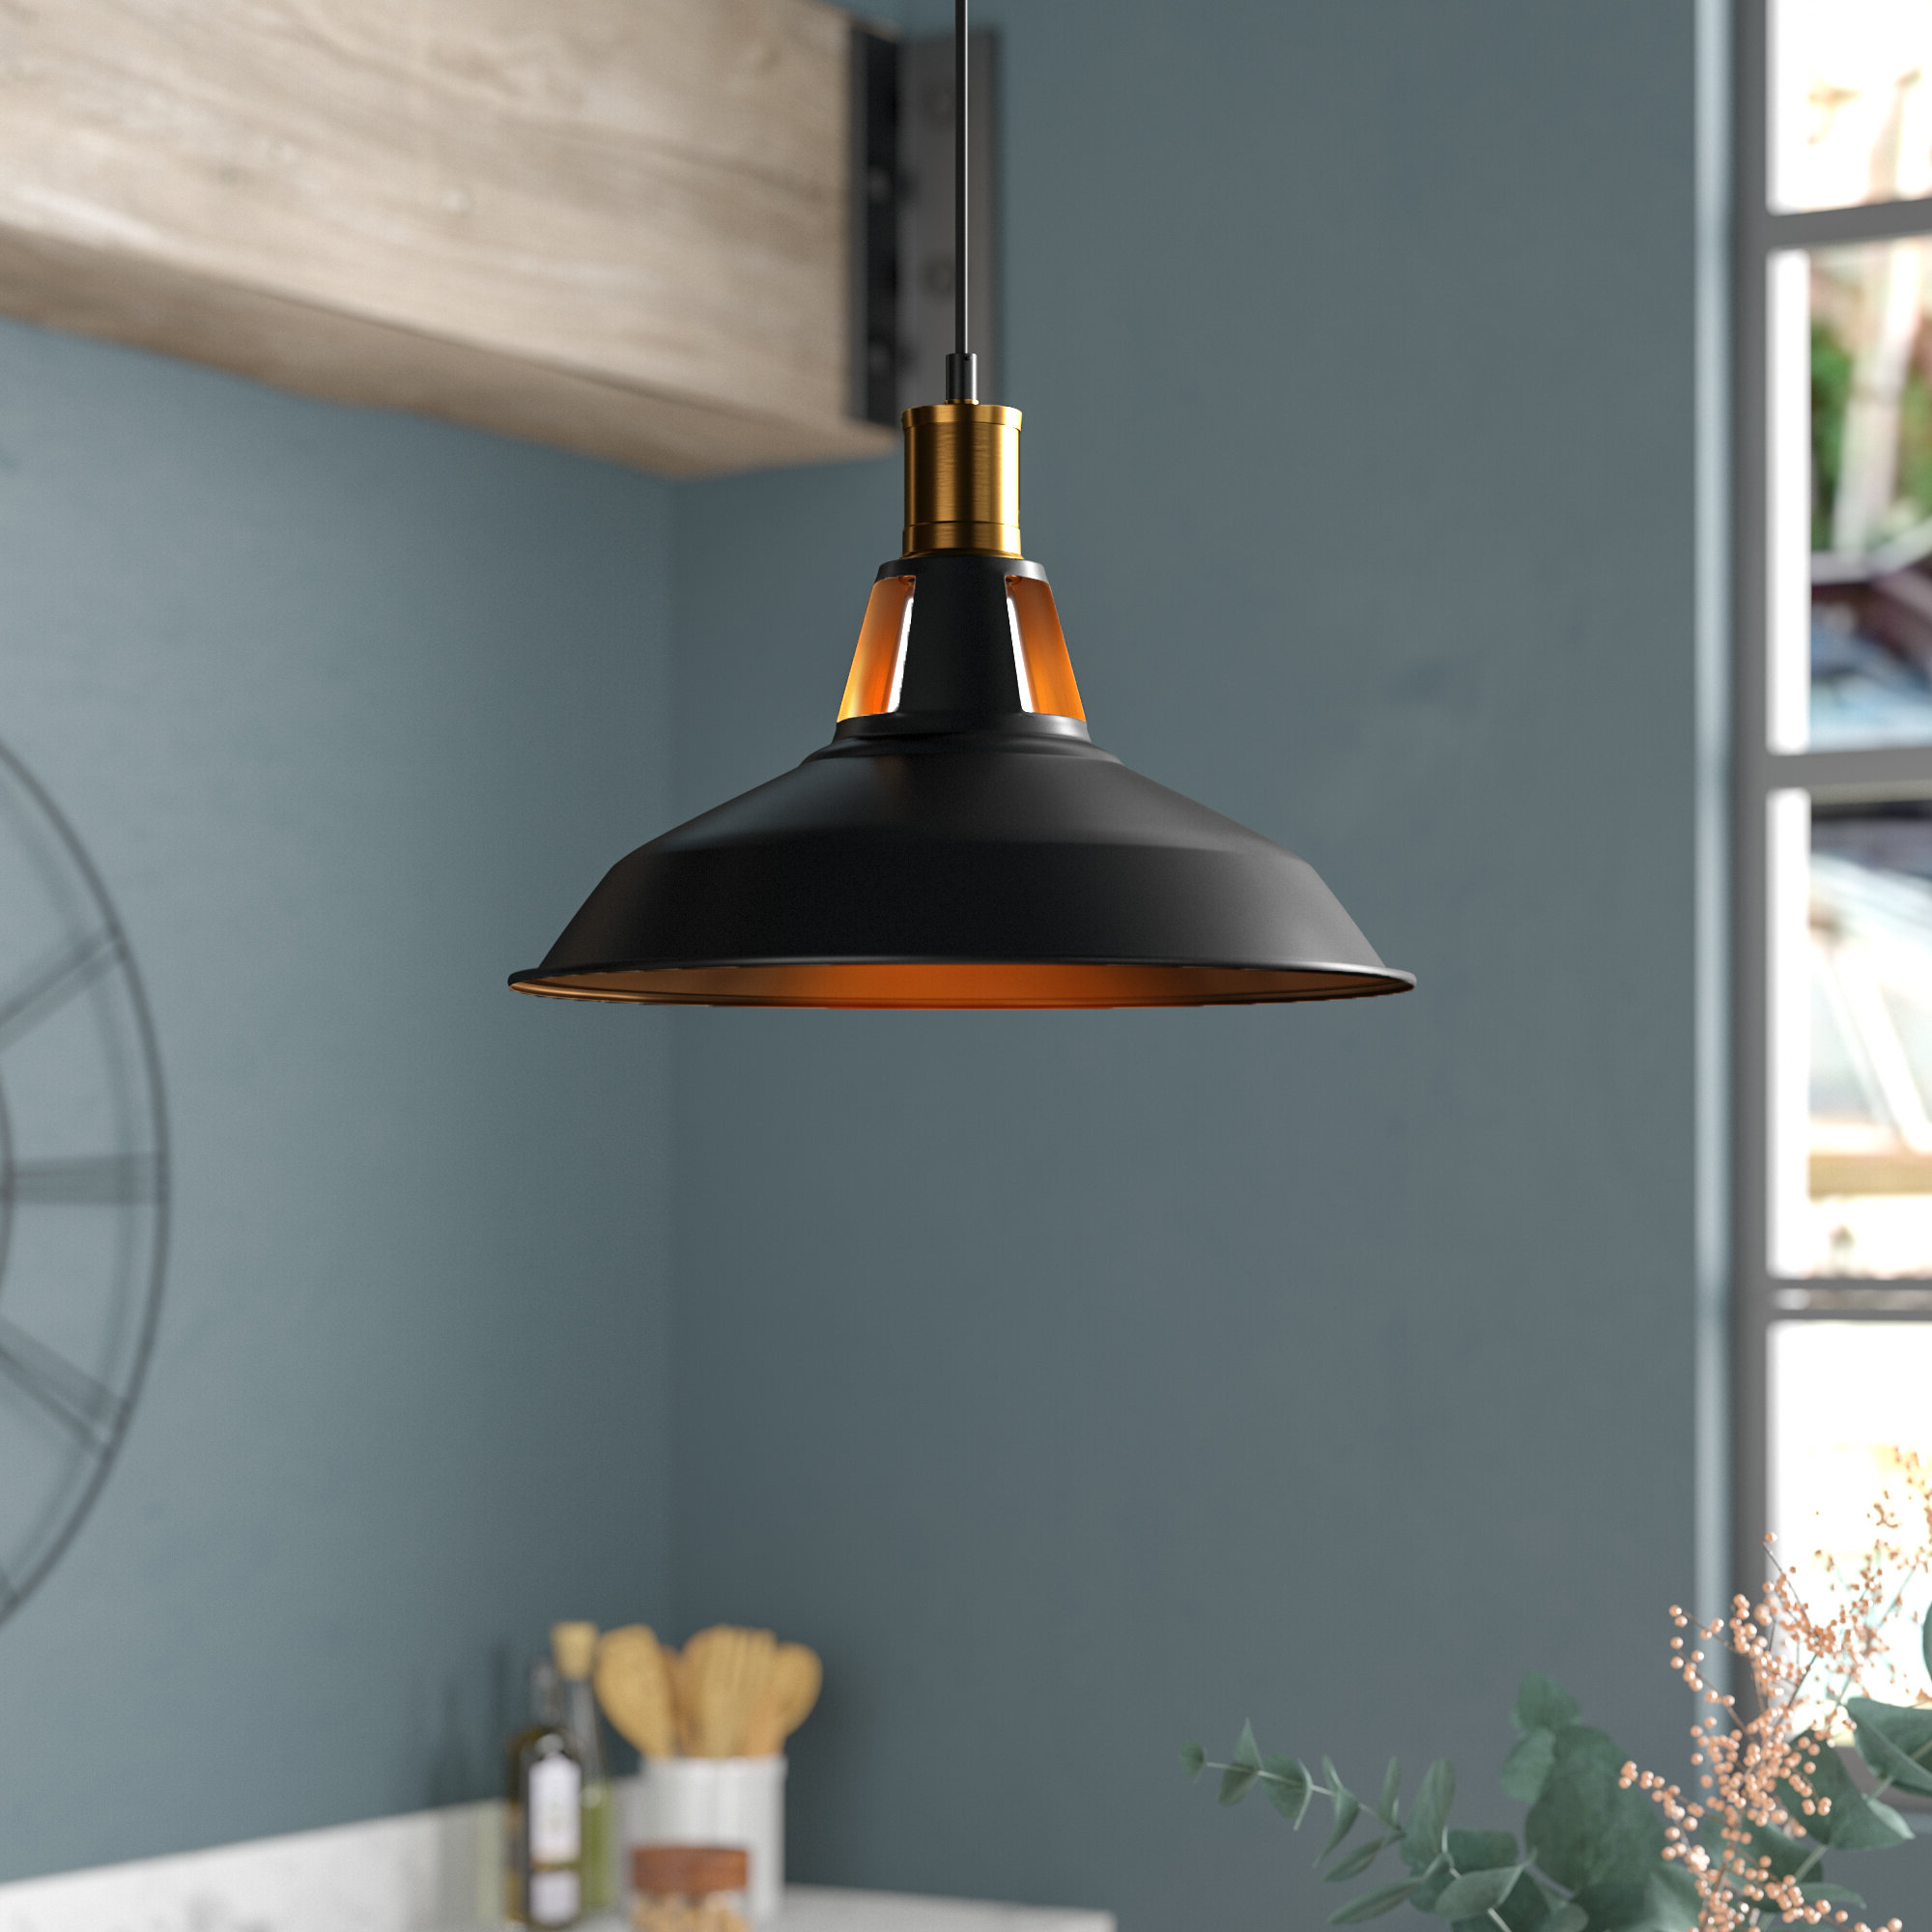 Popular Newhaven 1 Light Led Dome Pendant Pertaining To Gattis 1 Light Dome Pendants (View 8 of 25)